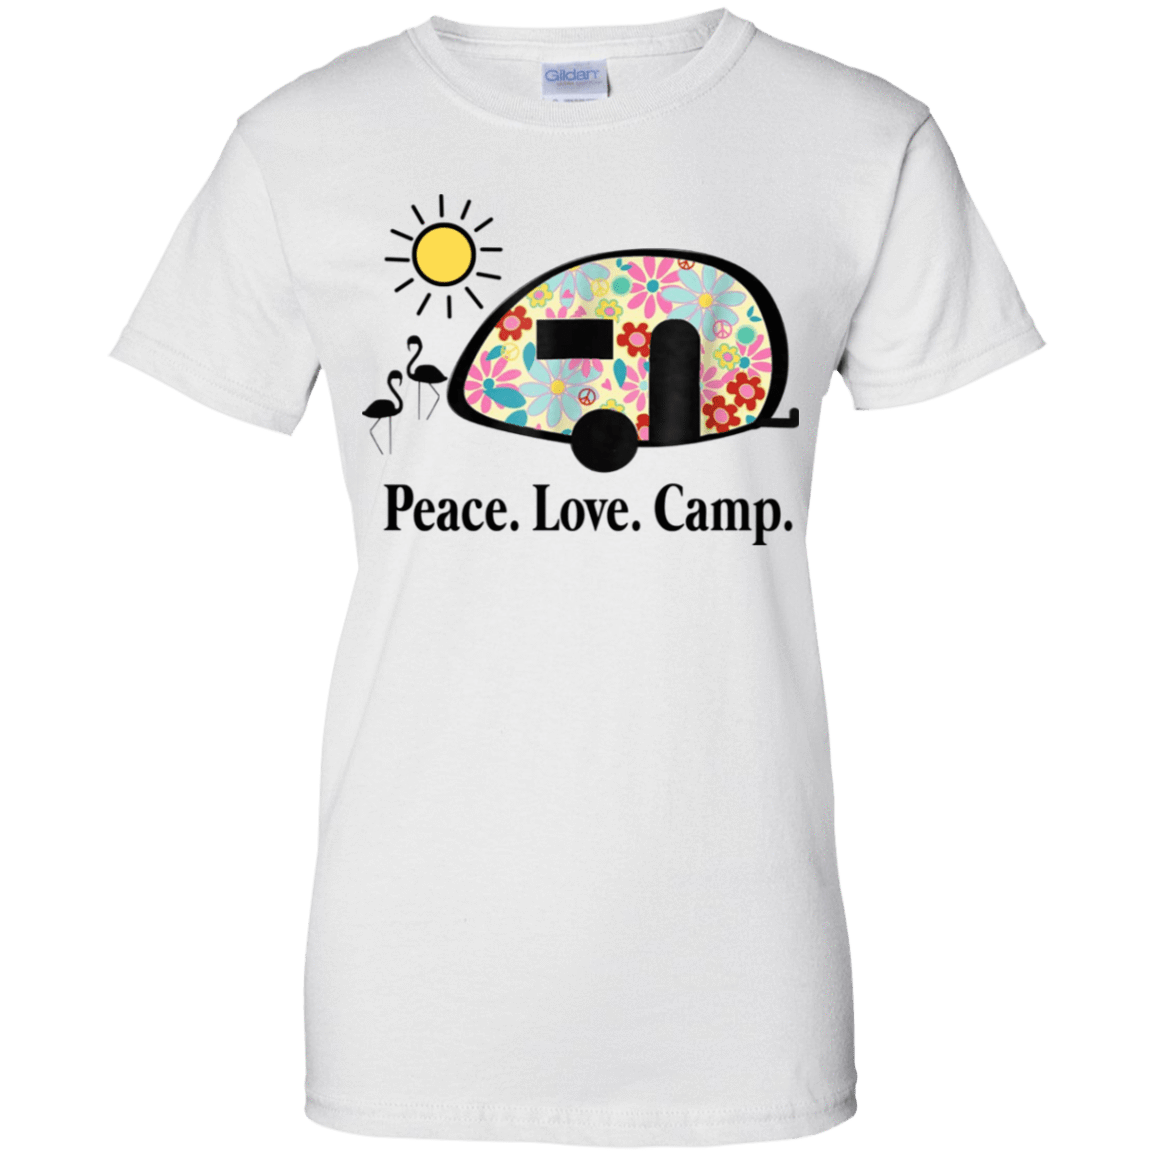 Peace. Love. Camp. Camping 939-9247-73889466-44814 - Tee Ript